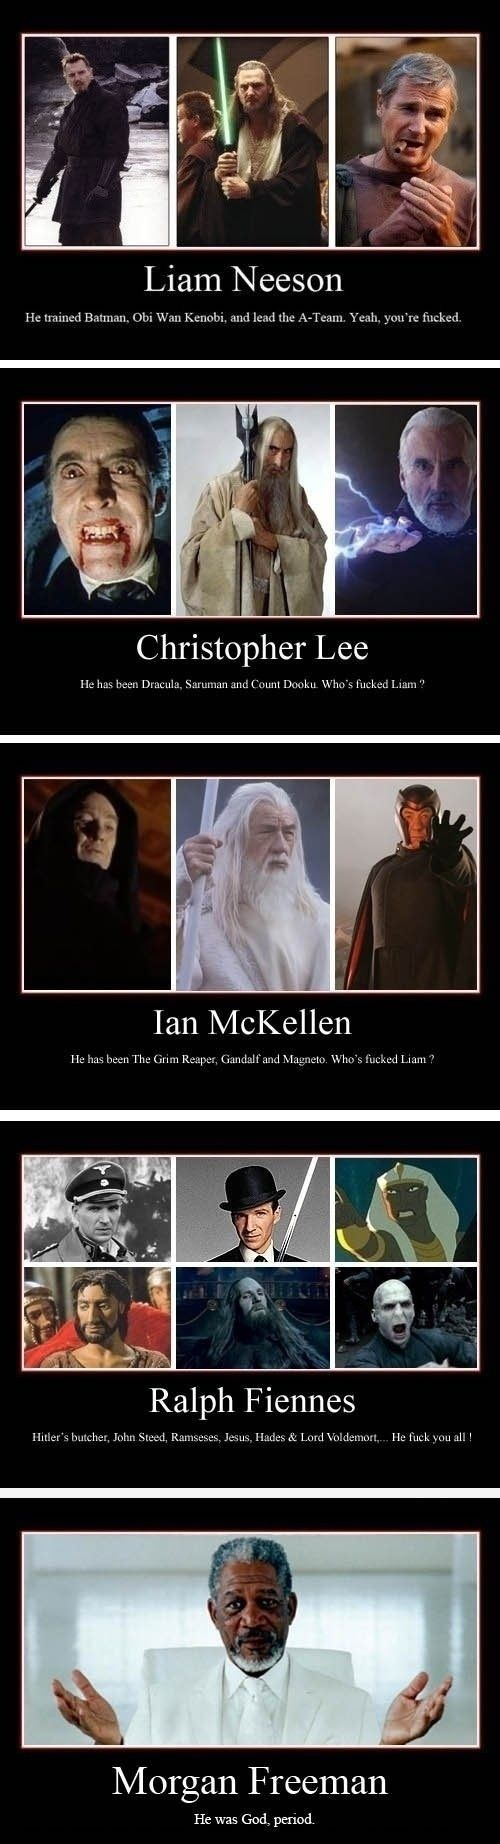 Different Celebrity Roles - funny pictures - funny photos - funny images - funny pics - funny quotes - #lol #humor #funny